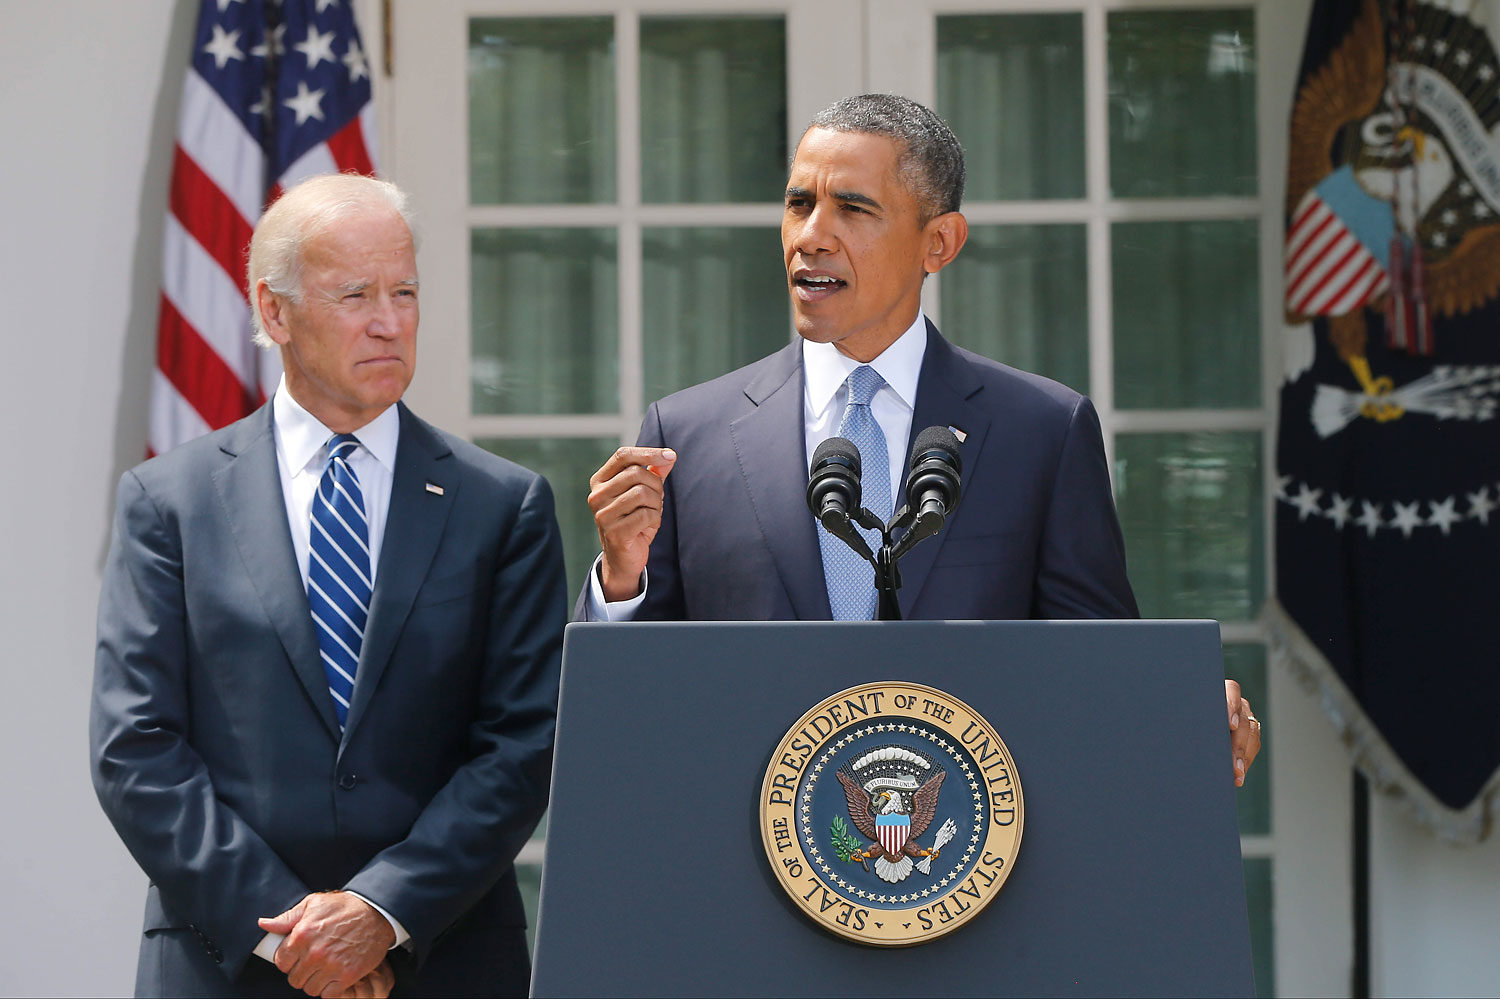 President Barack Obama stands with Vice President Joe Biden as he makes a statement about Syria in the Rose Garden at the White House in Washington Aug. 31, 2013.